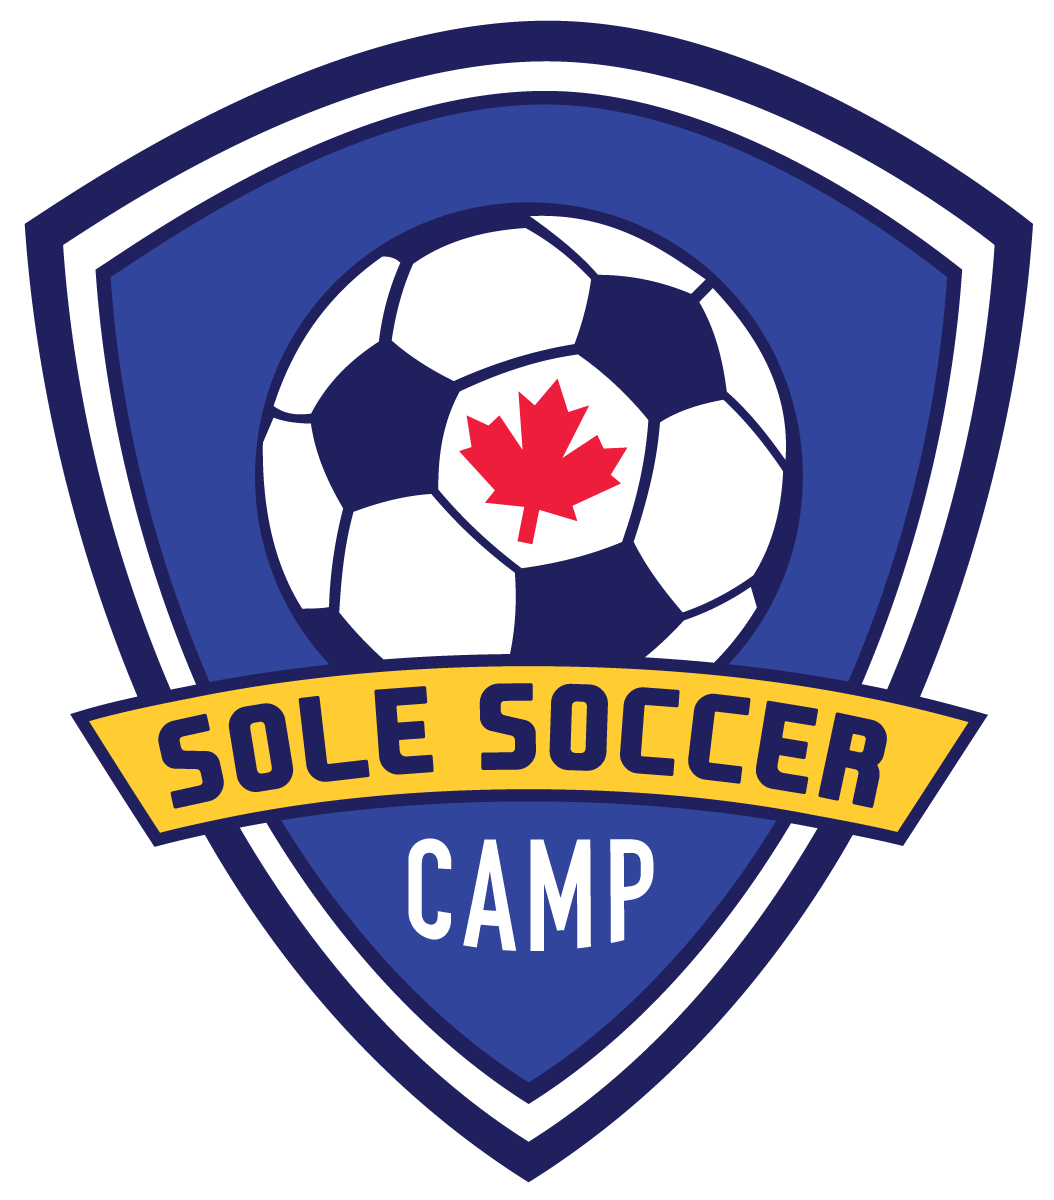 Sole Soccer Camp